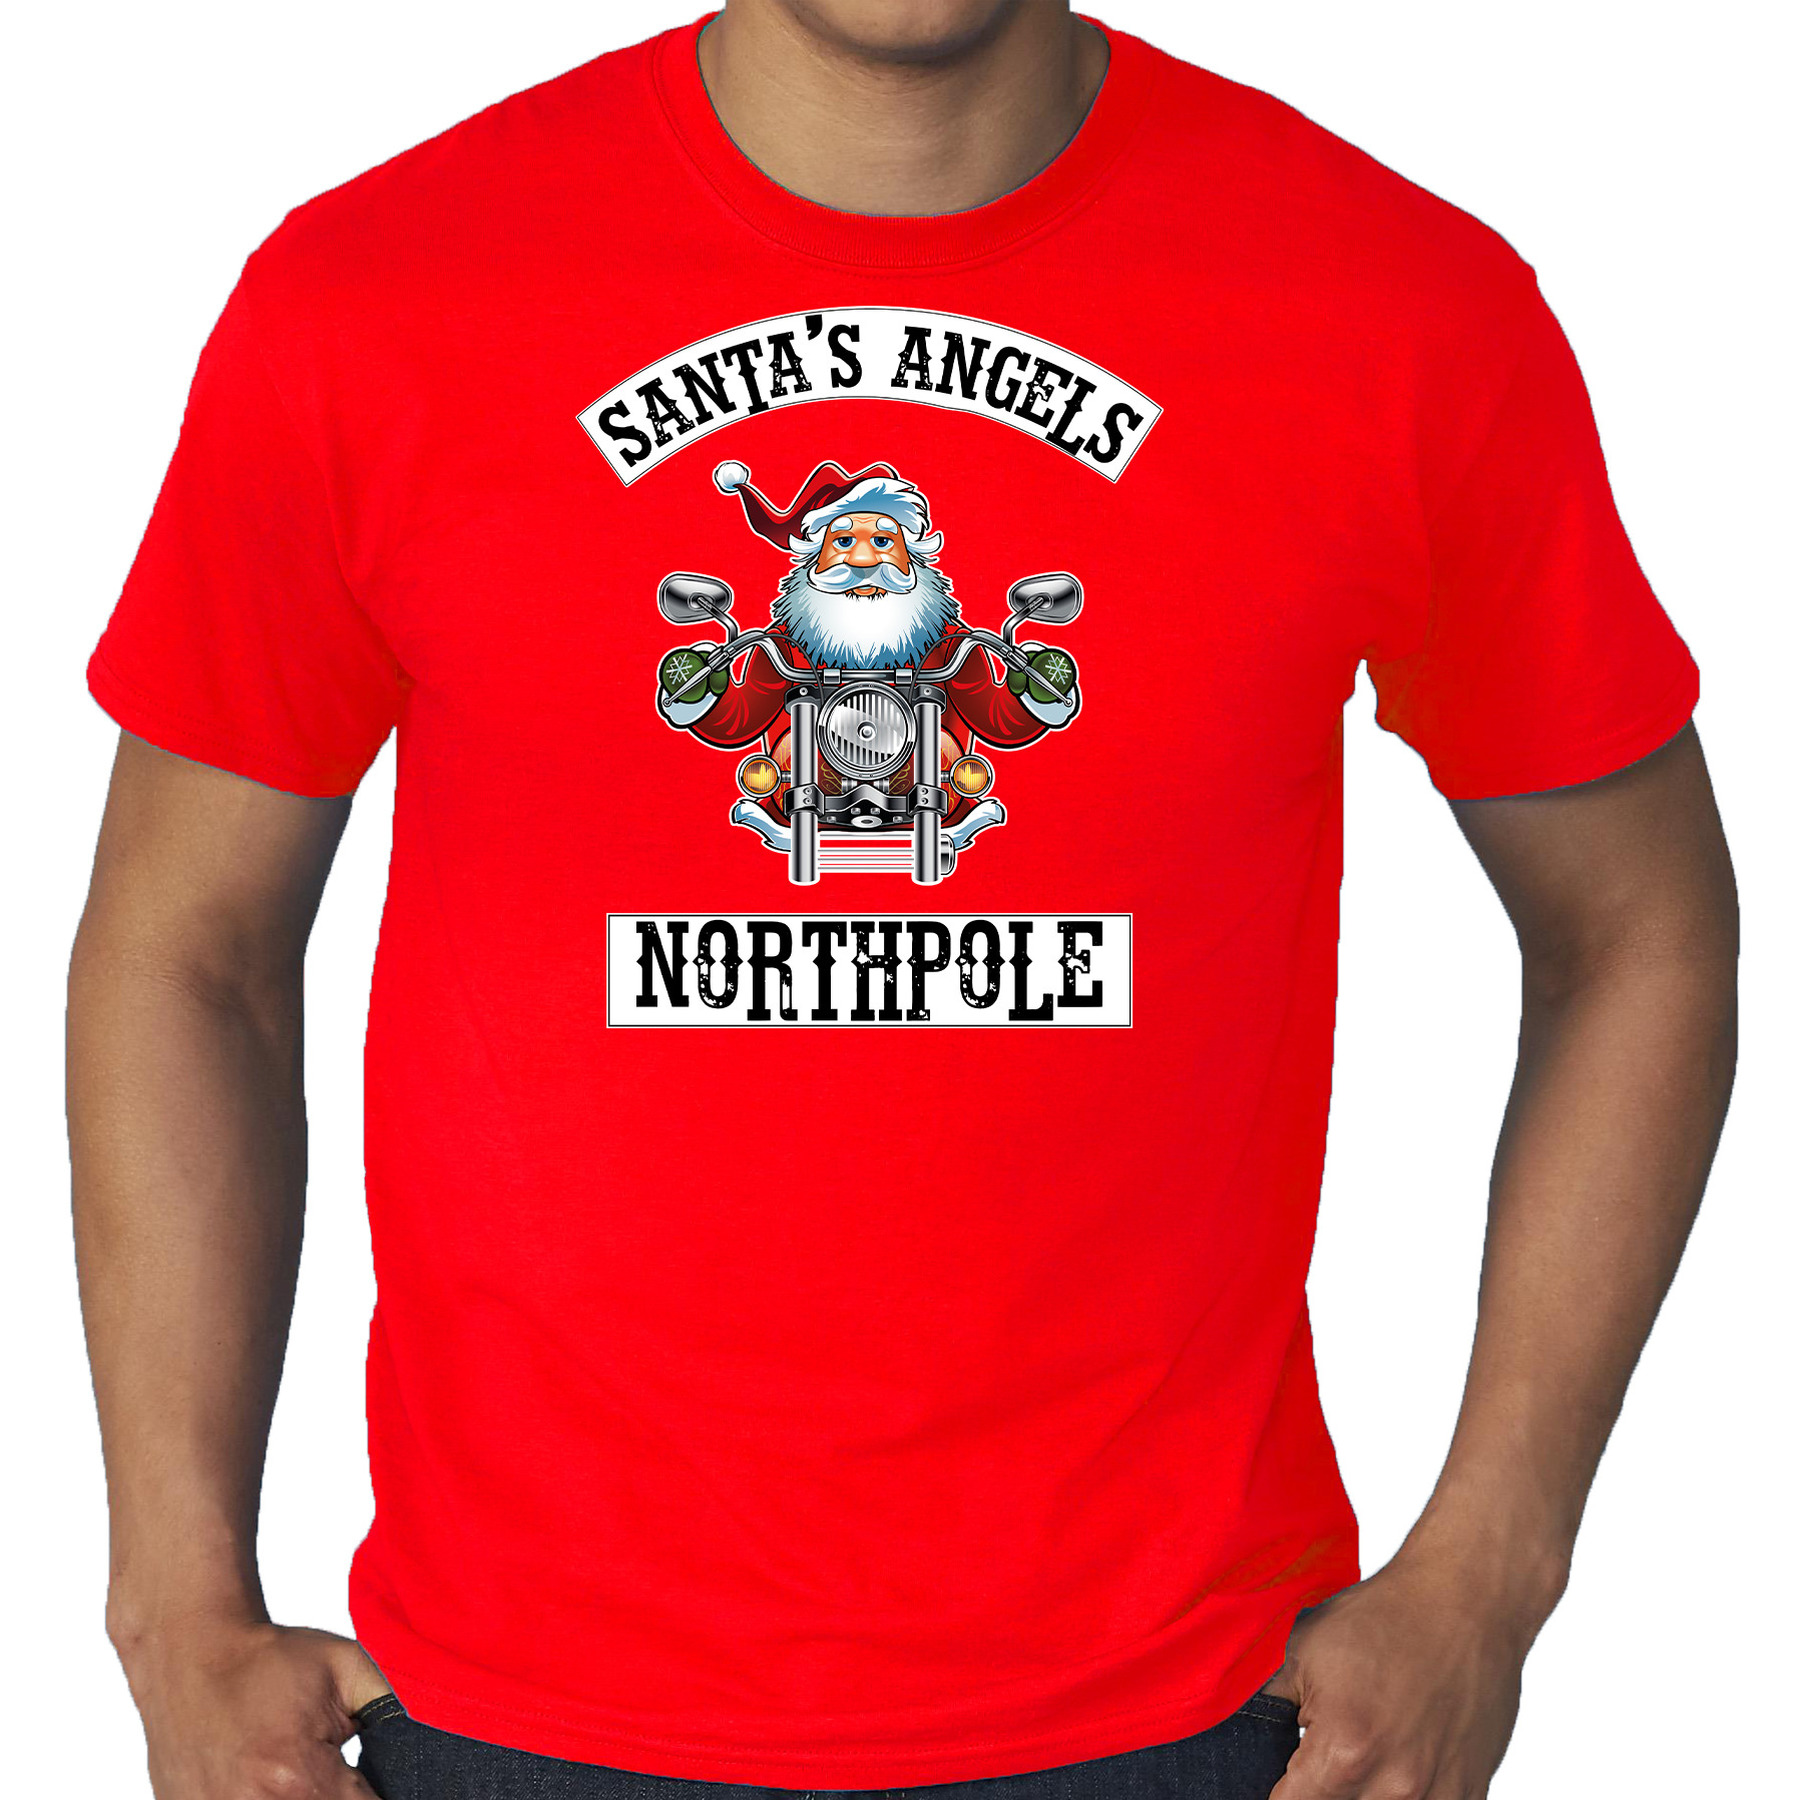 Grote maten fout Kerstshirt - outfit Santas angels Northpole rood voor heren